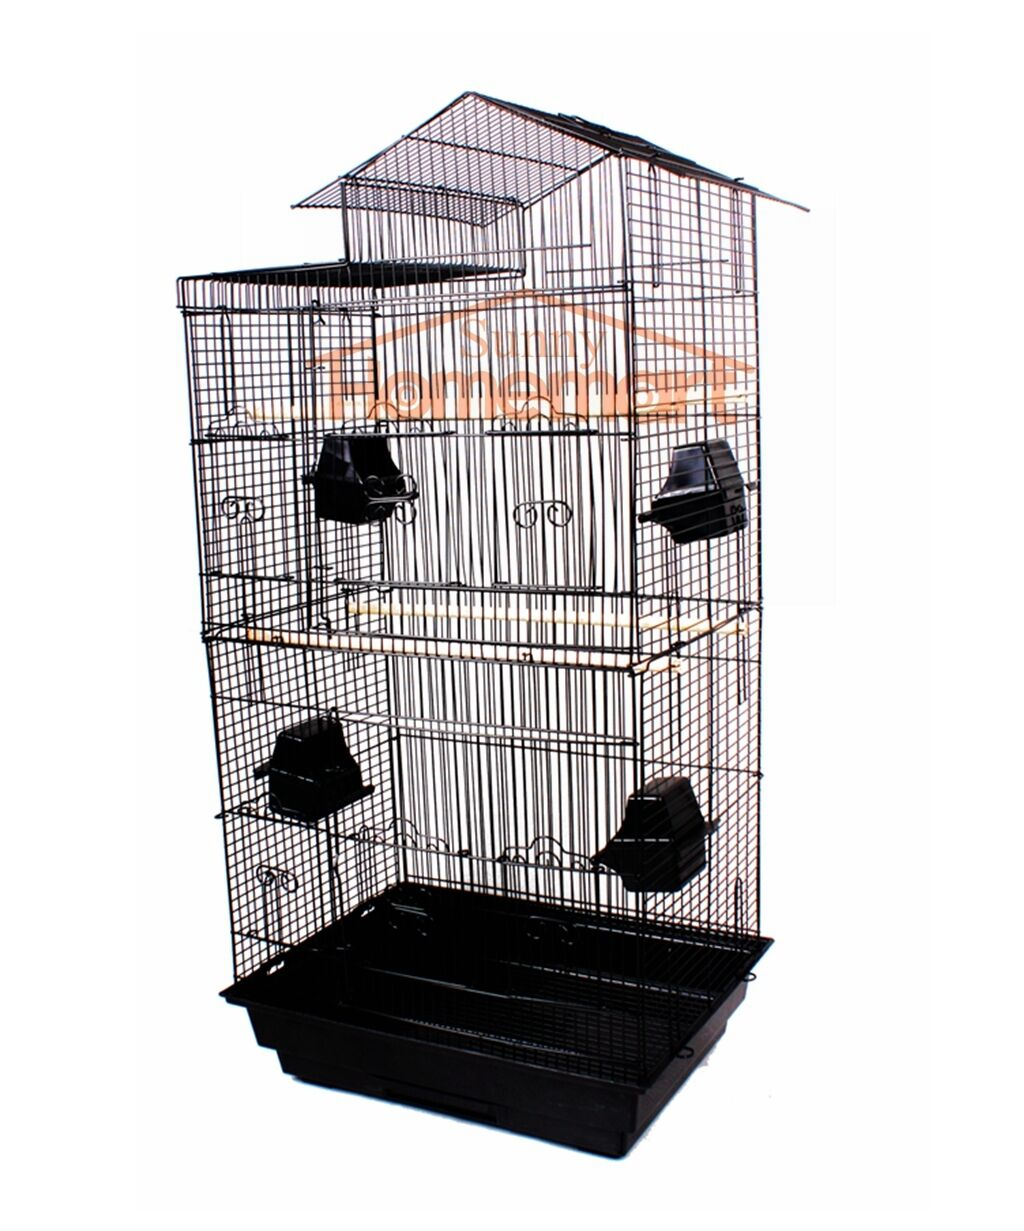 1 x New Black Elegant Traditinal House Top Bird Cage Carry Cage 94CM